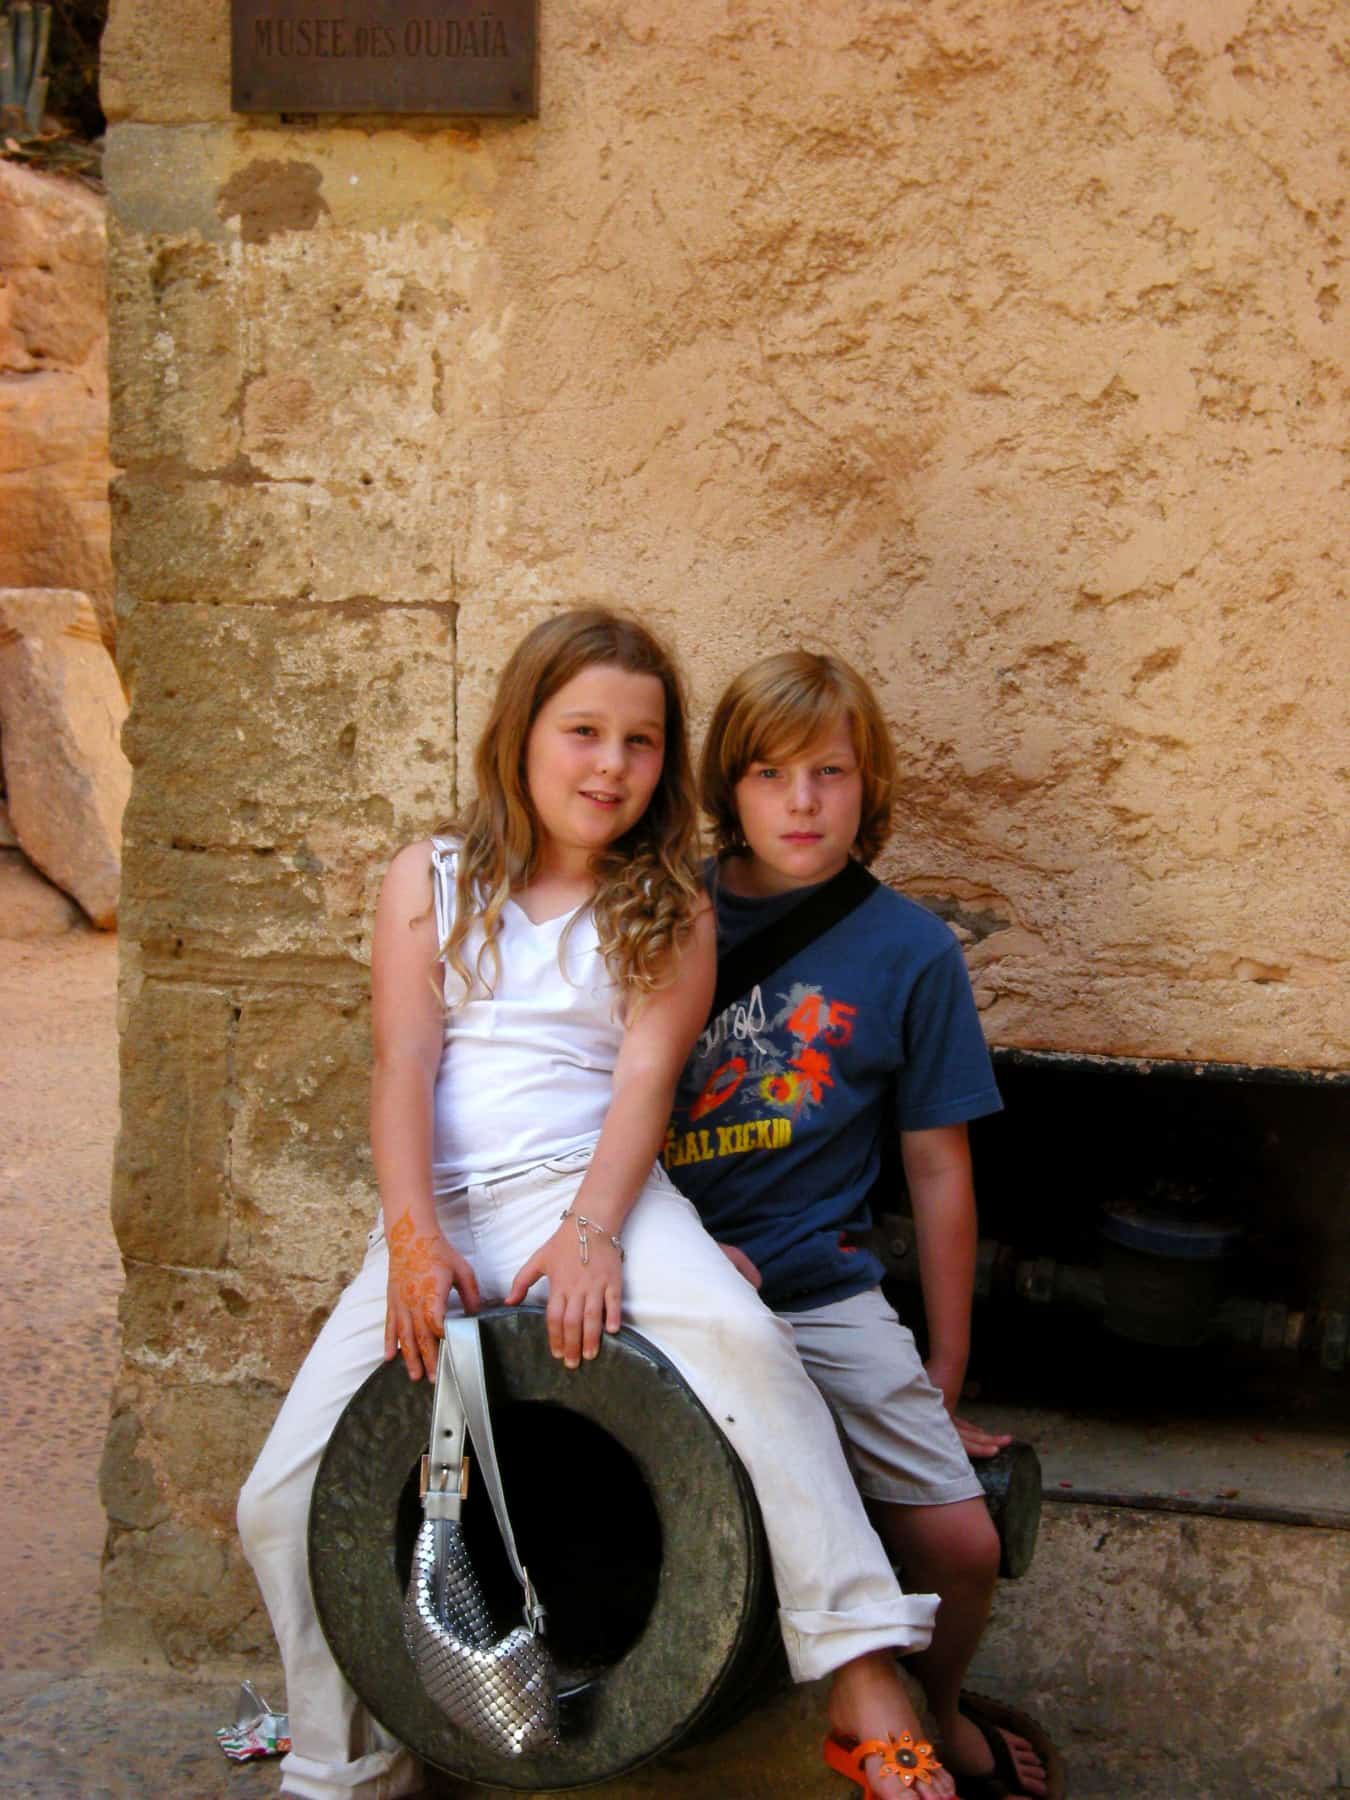 The twins, age 11, posing on a cannon at an old Moroccan fort in Rabat.